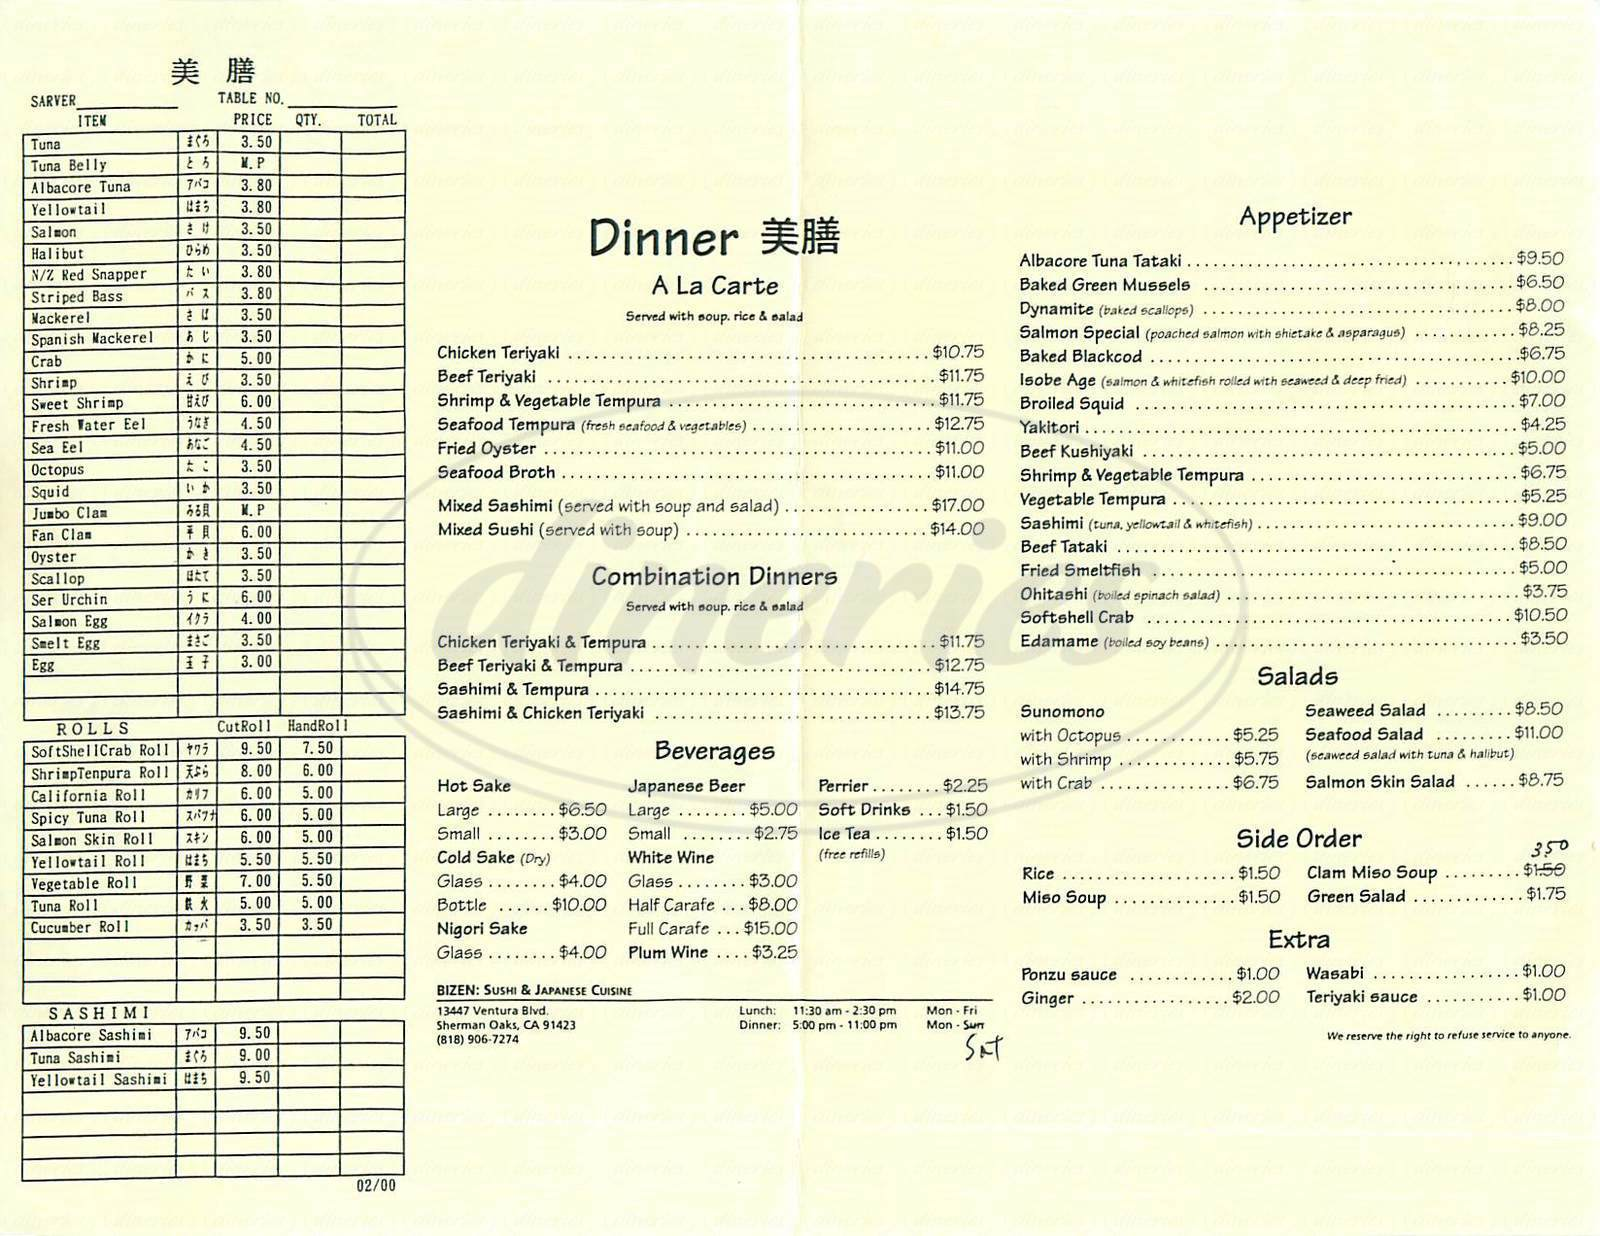 menu for Bizen Restaurant